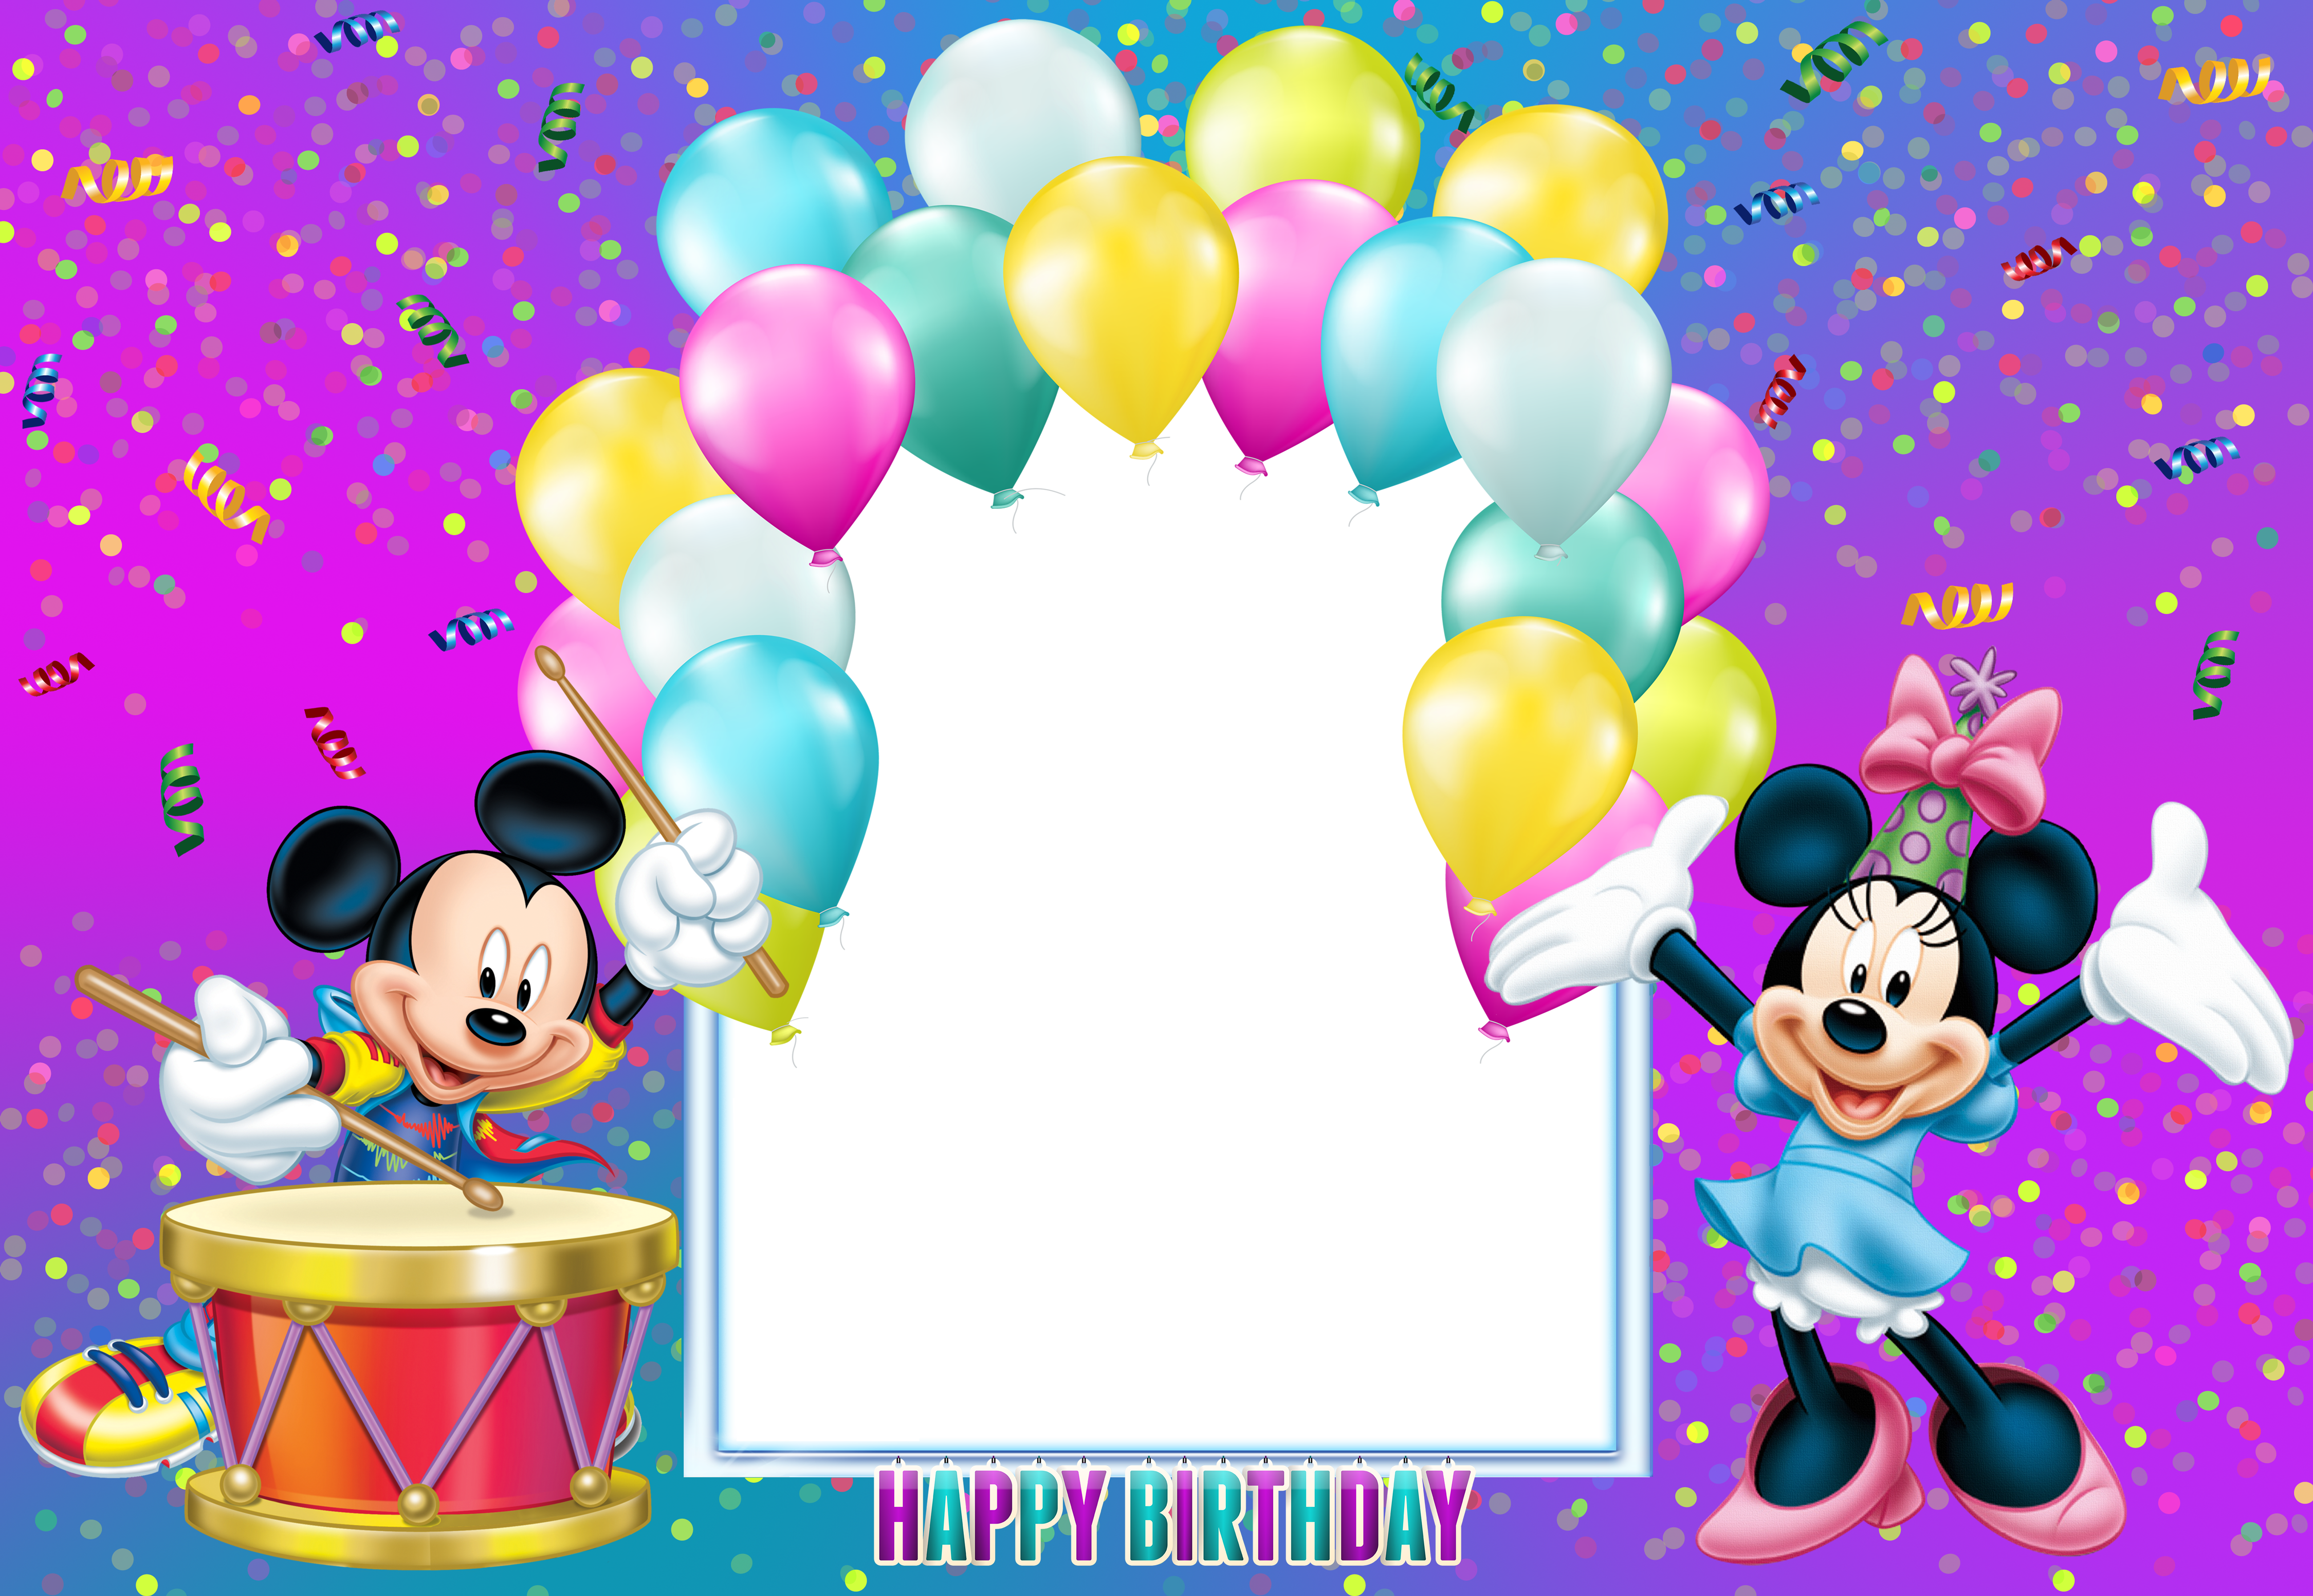 Happy birthday mickey mouse png. Transparent kids frame gallery